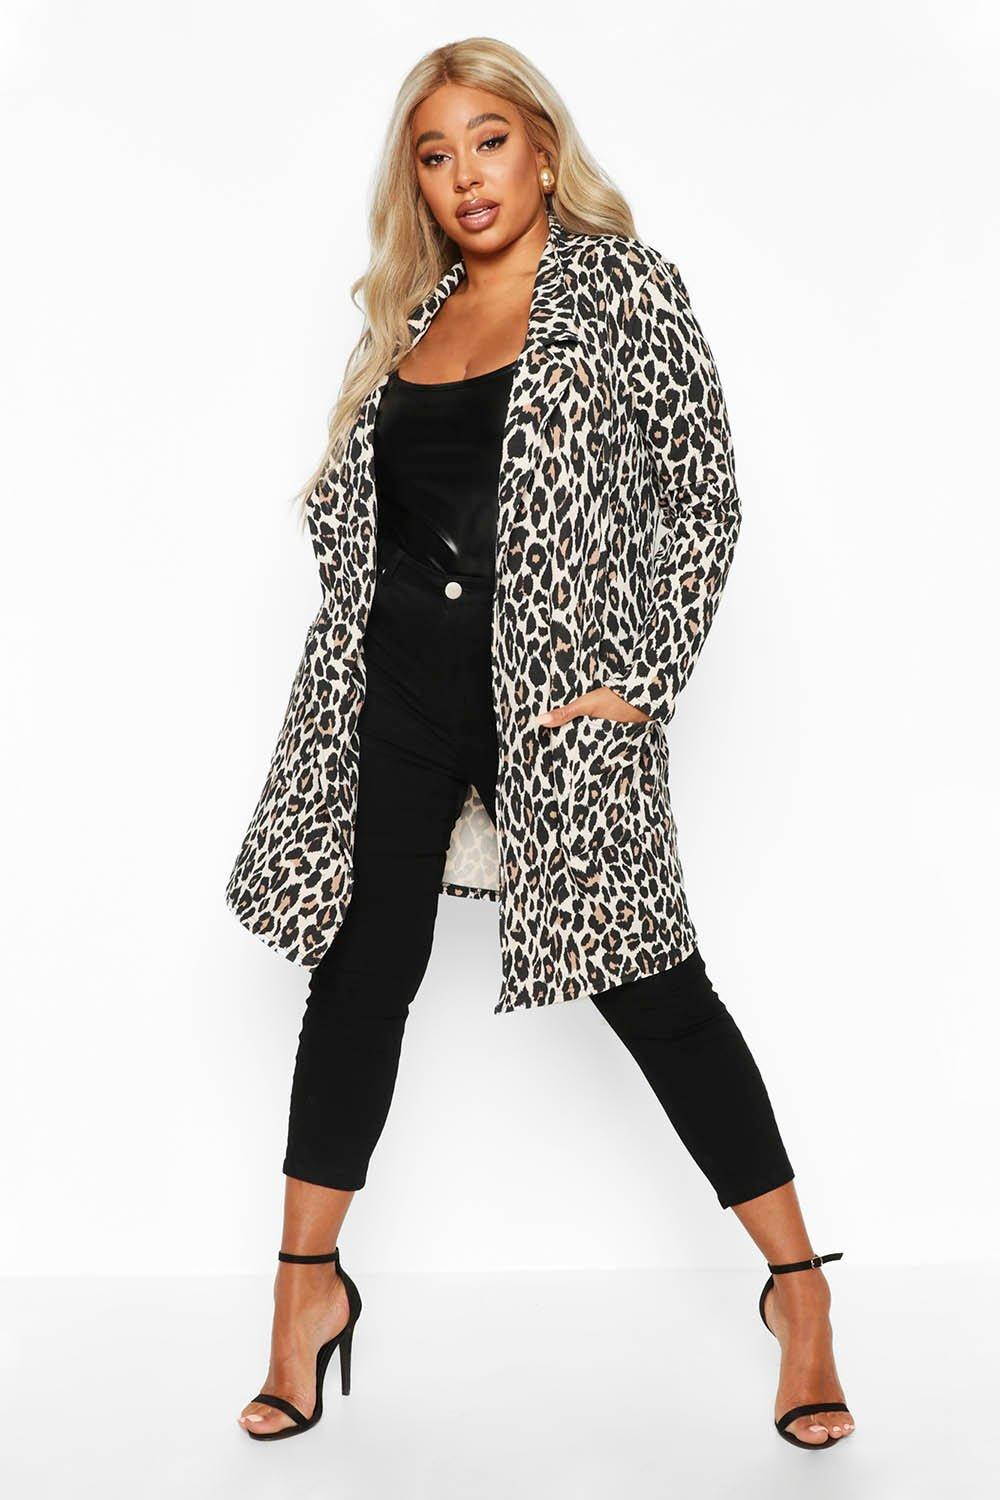 boohoo Womens Plus Leopard Print Duster - Brown - 20, Brown